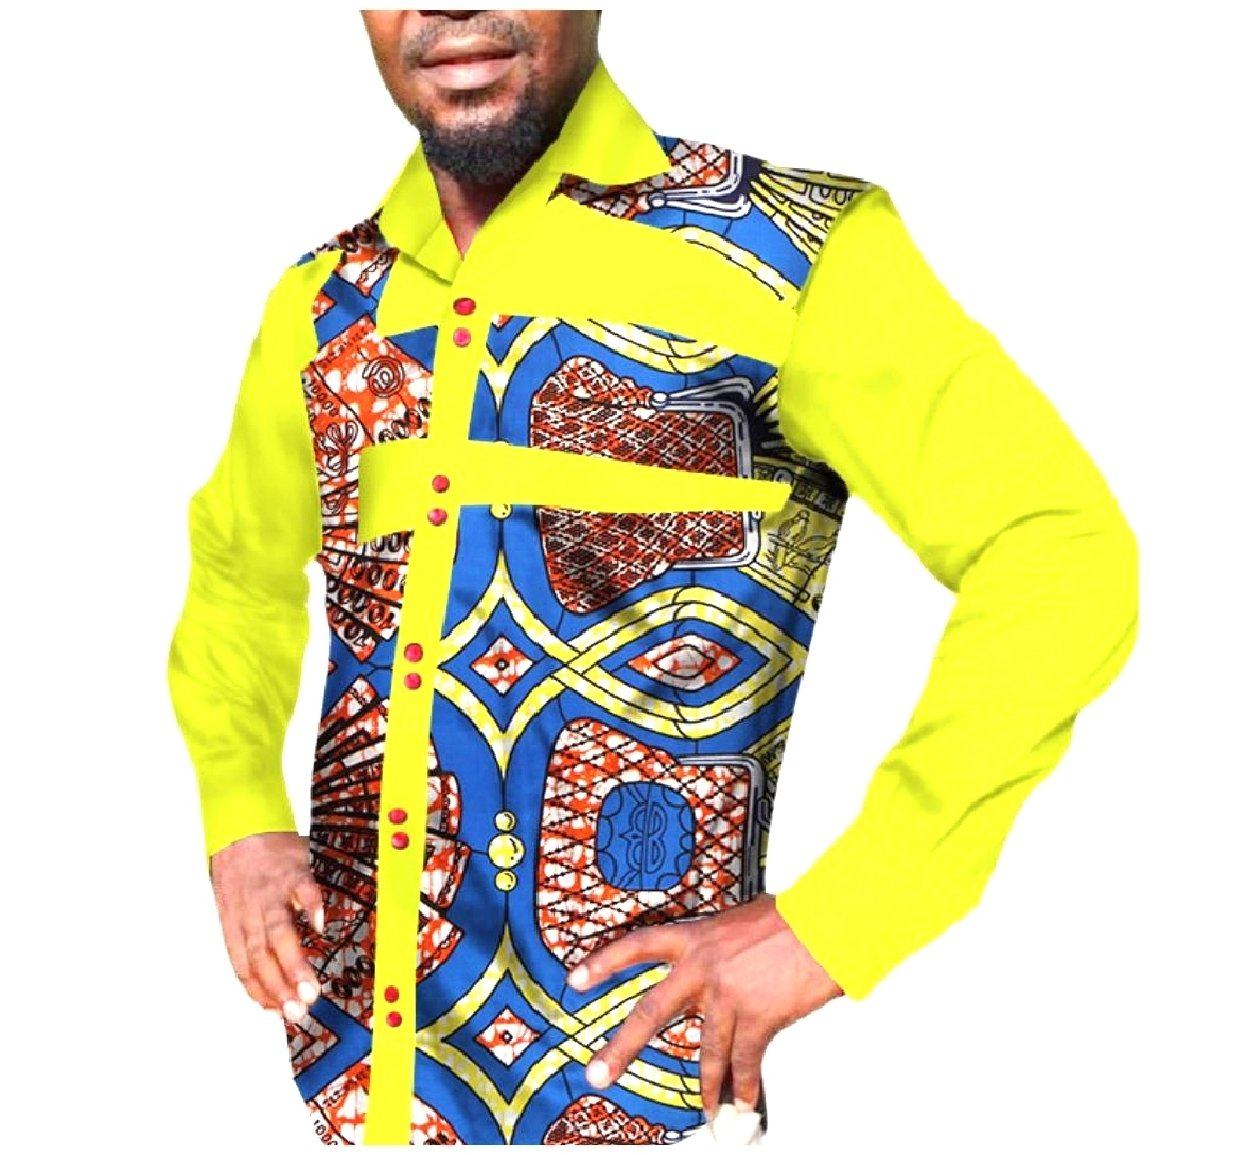 Tootless Men's Fine Cotton Patchwork Dashiki African Printed Shirt Tops Yellow S by Tootless-Men (Image #1)